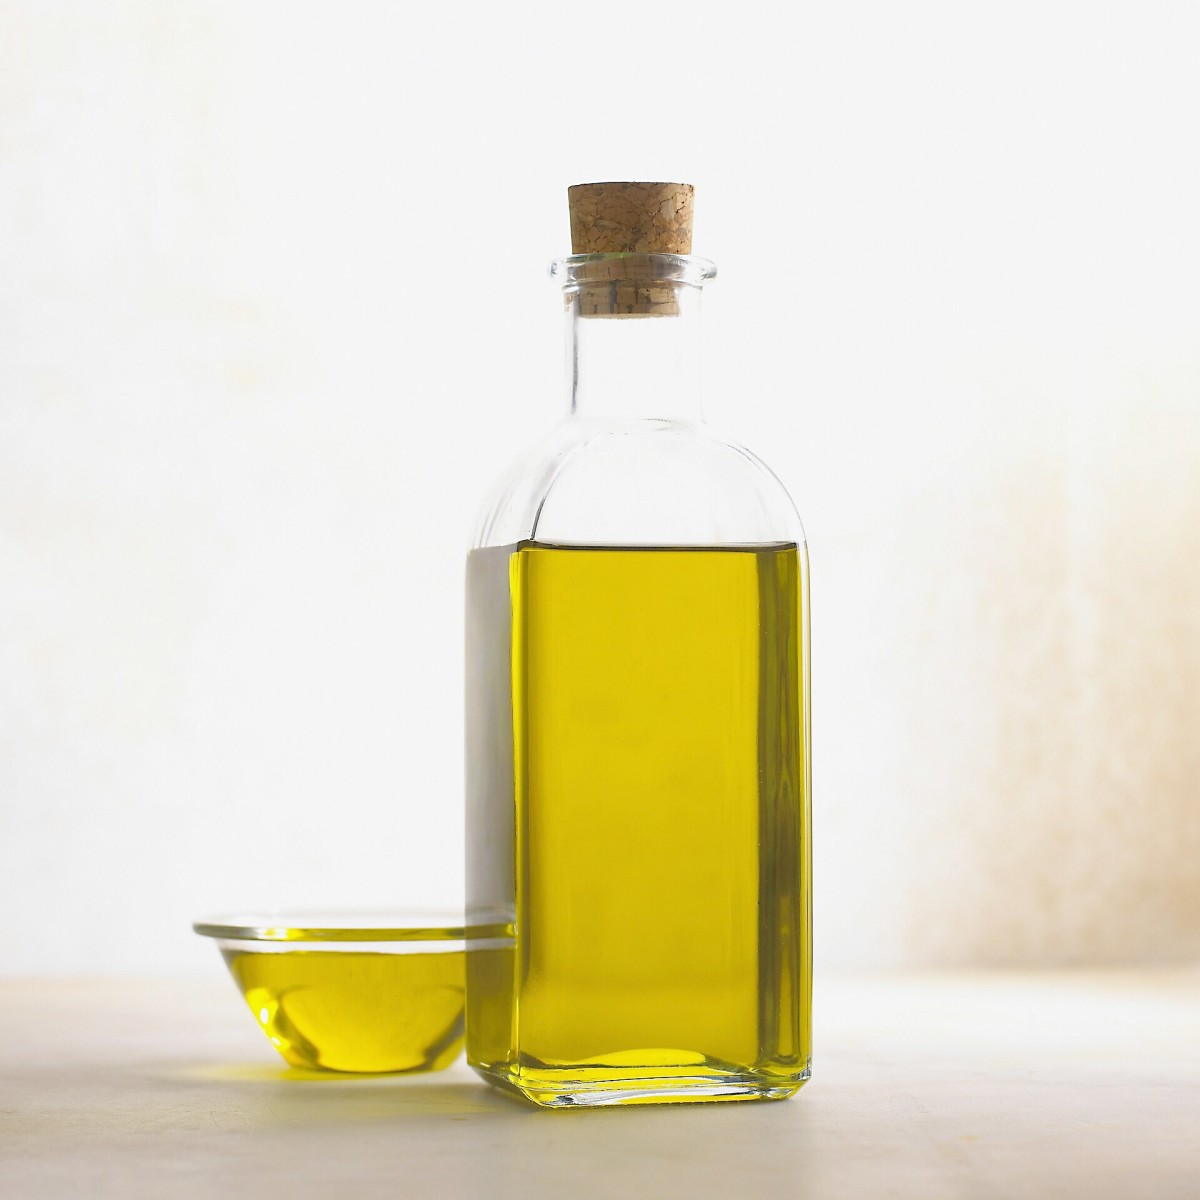 Olive oil is the main ingredient in gallbladder flush recipes.